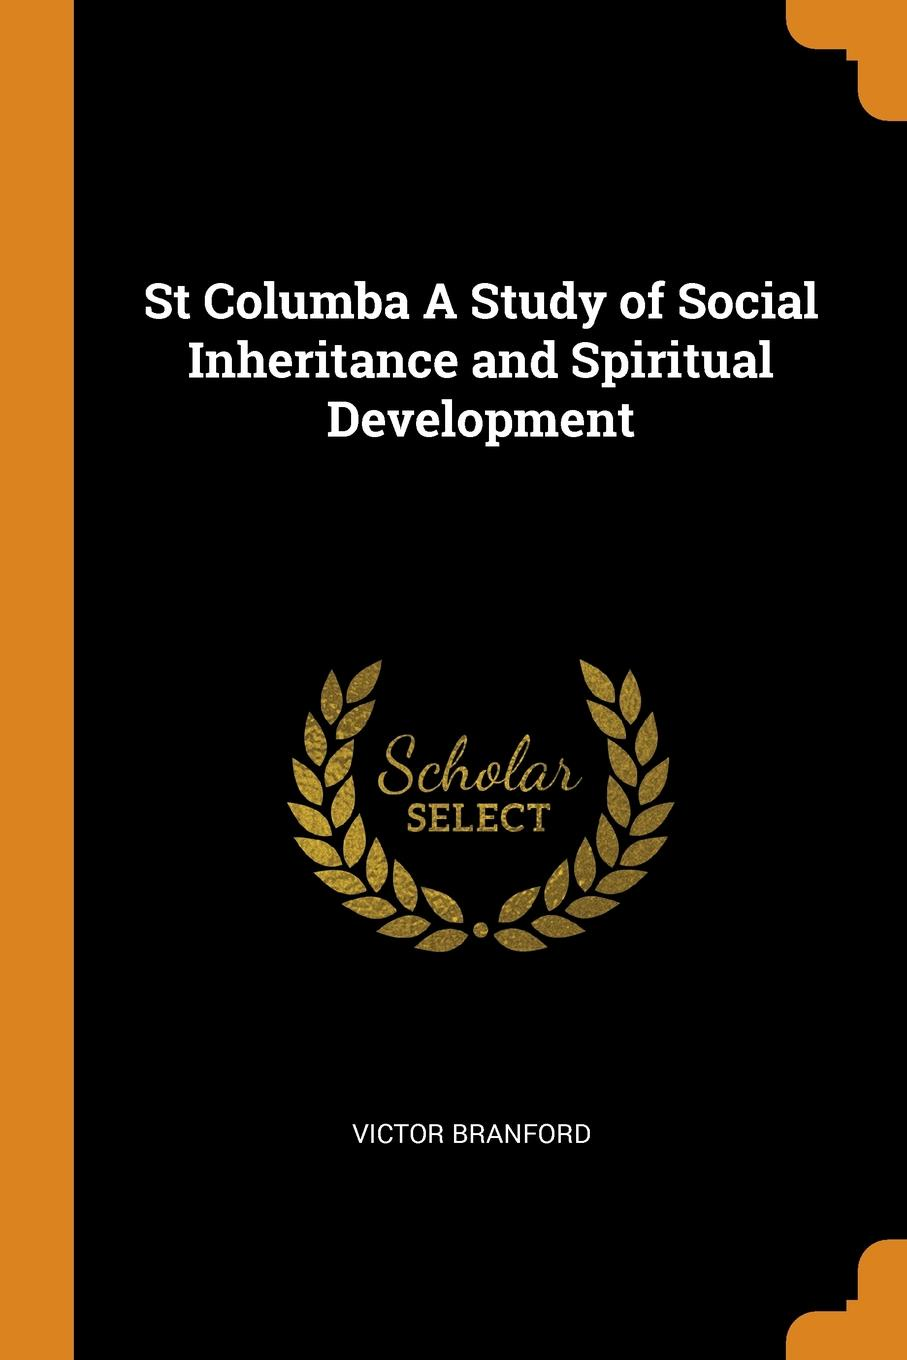 Victor Branford St Columba A Study of Social Inheritance and Spiritual Development victor branford the coming polity a study in reconstruction by victor branford and patrick geddes